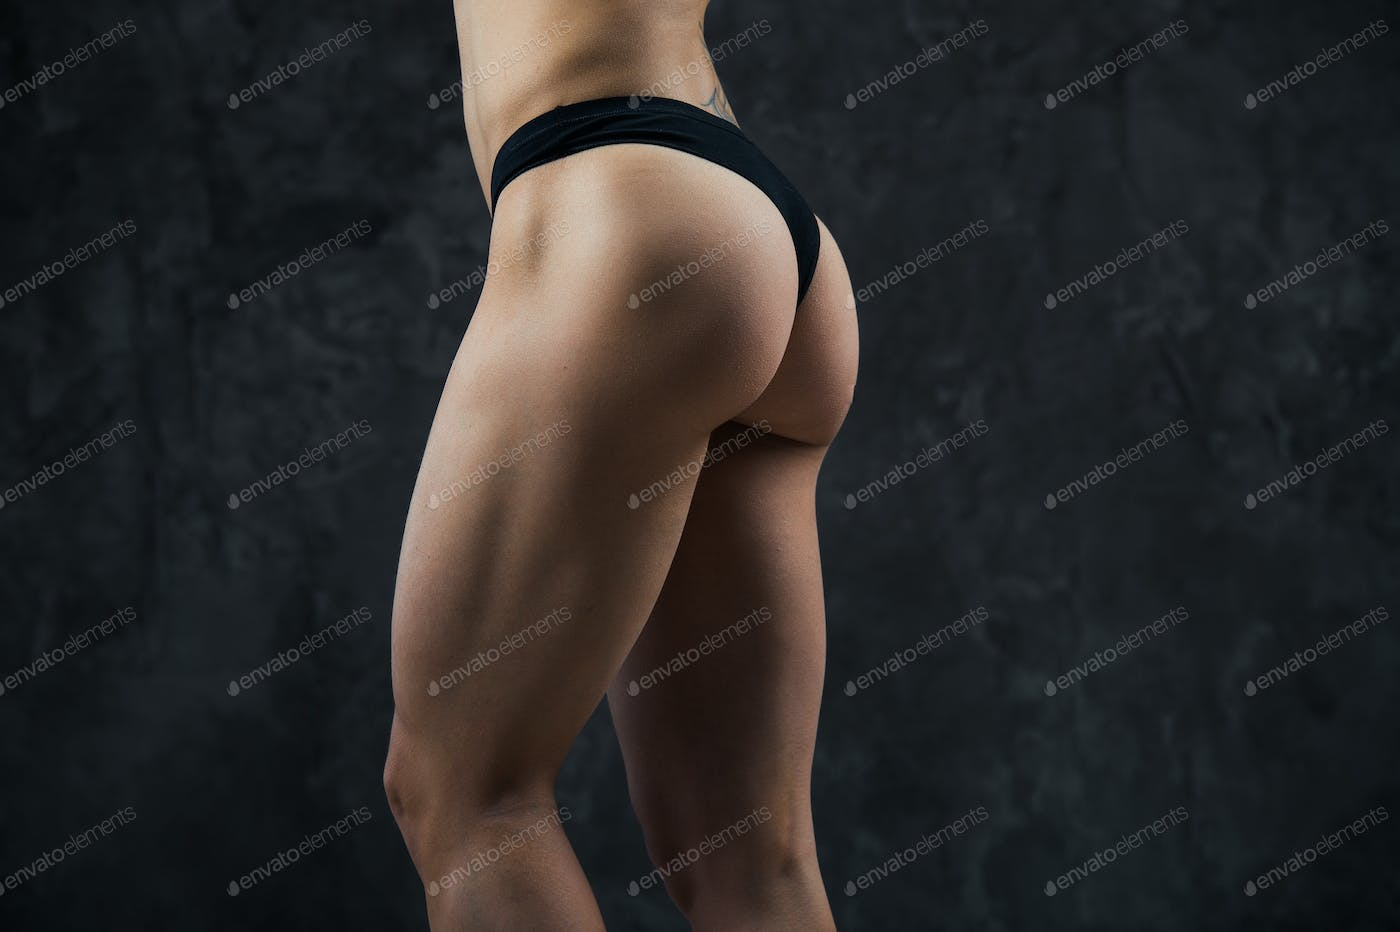 Ass Perfect Video beautiful athletic ass close-up. perfect woman sexy buttocks in lingerie.  clean healthy skin. part photoromankosolapov on envato elements